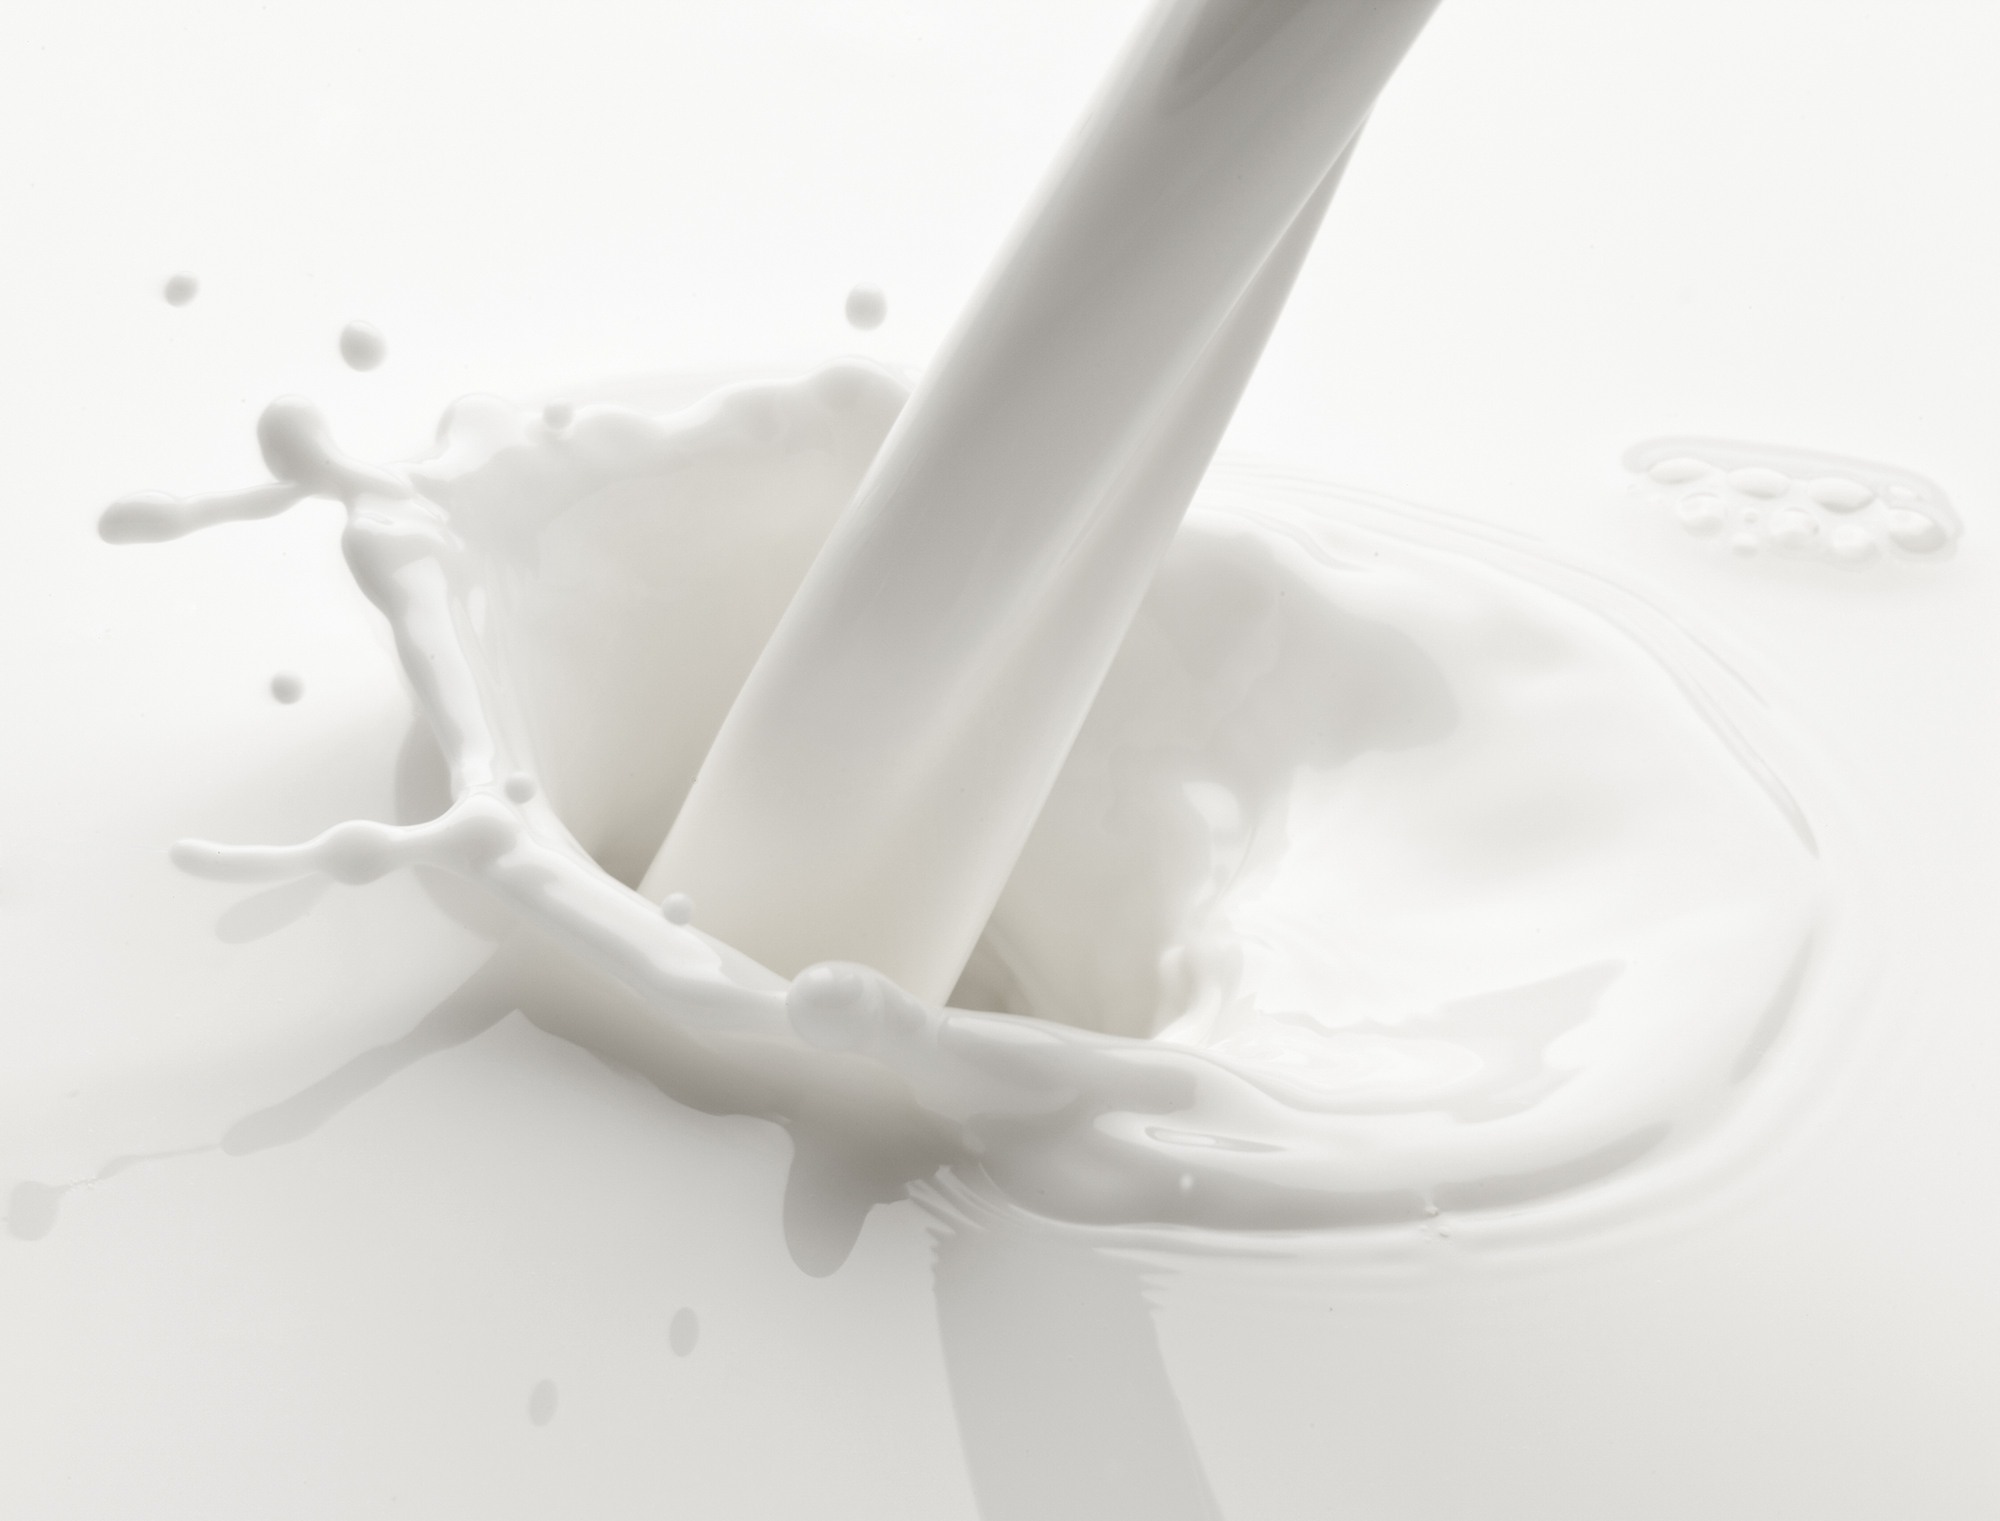 bigstock-Splash-of-milk-on-a-white-back-21892247_editada